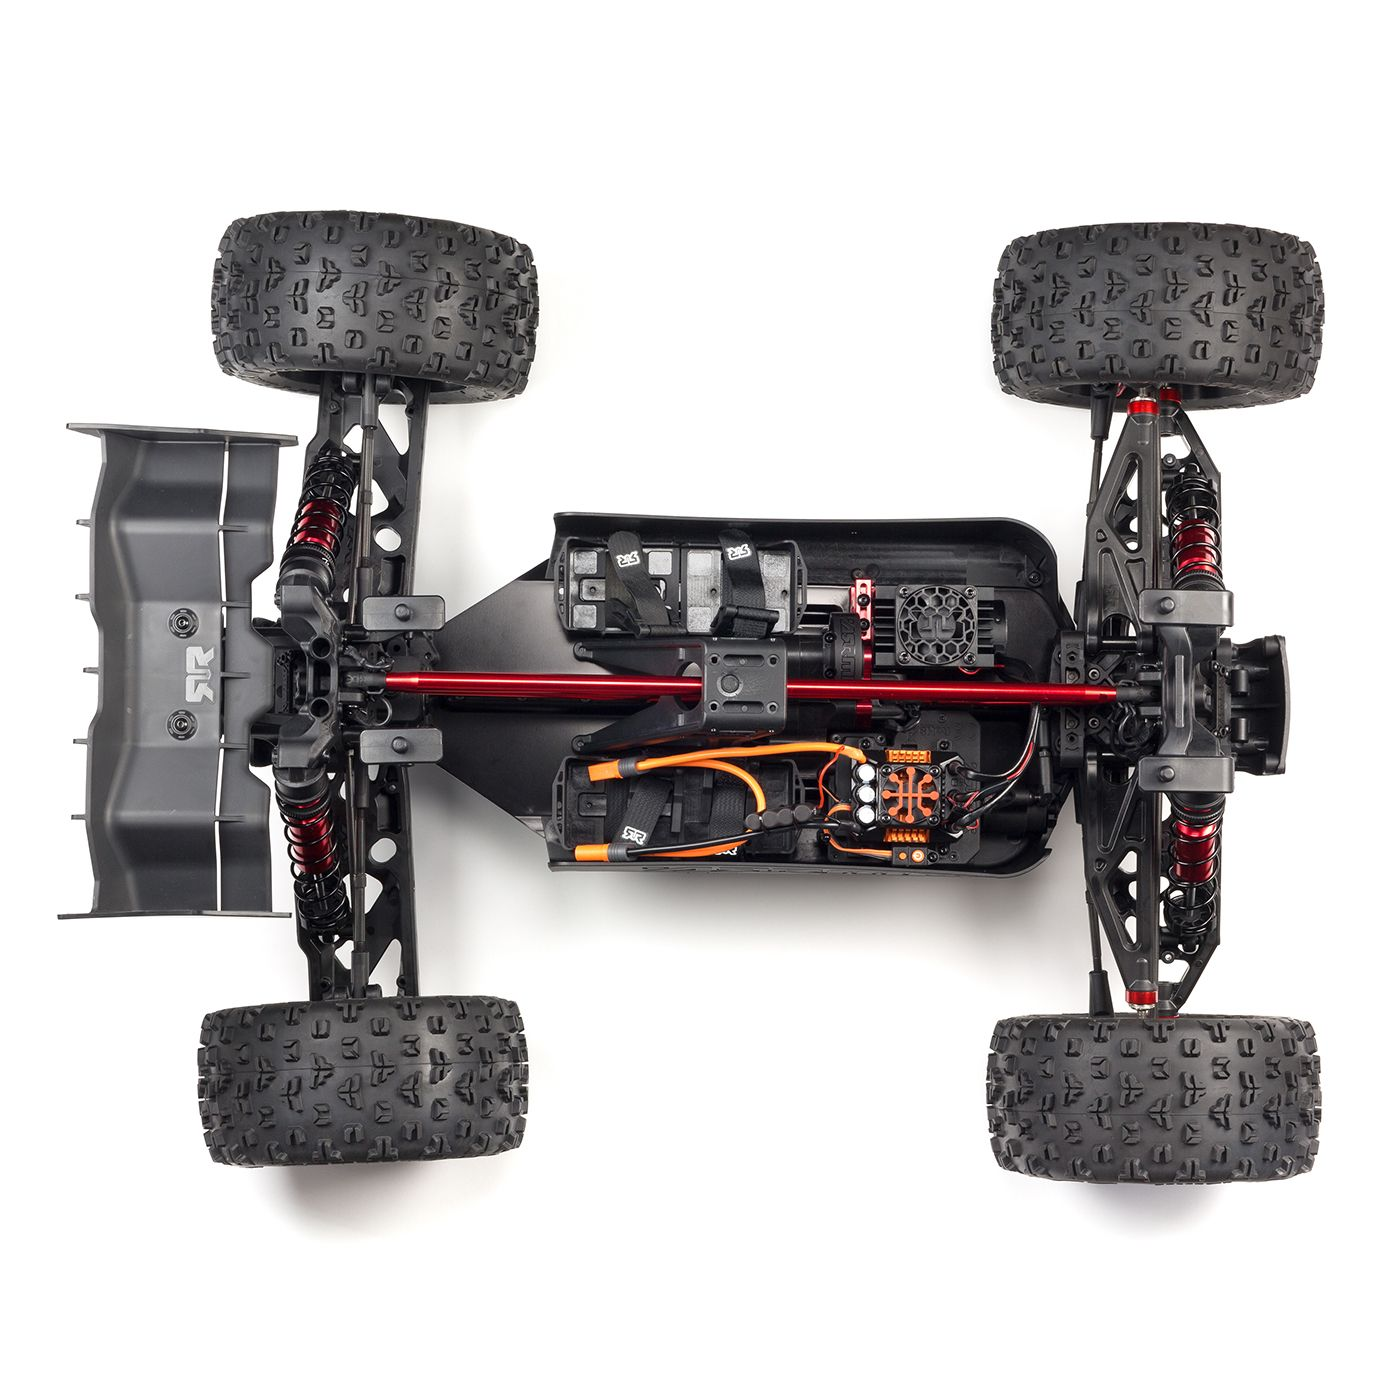 ARRMA Kraton 8S BLX Speed Truck - Chassis Top